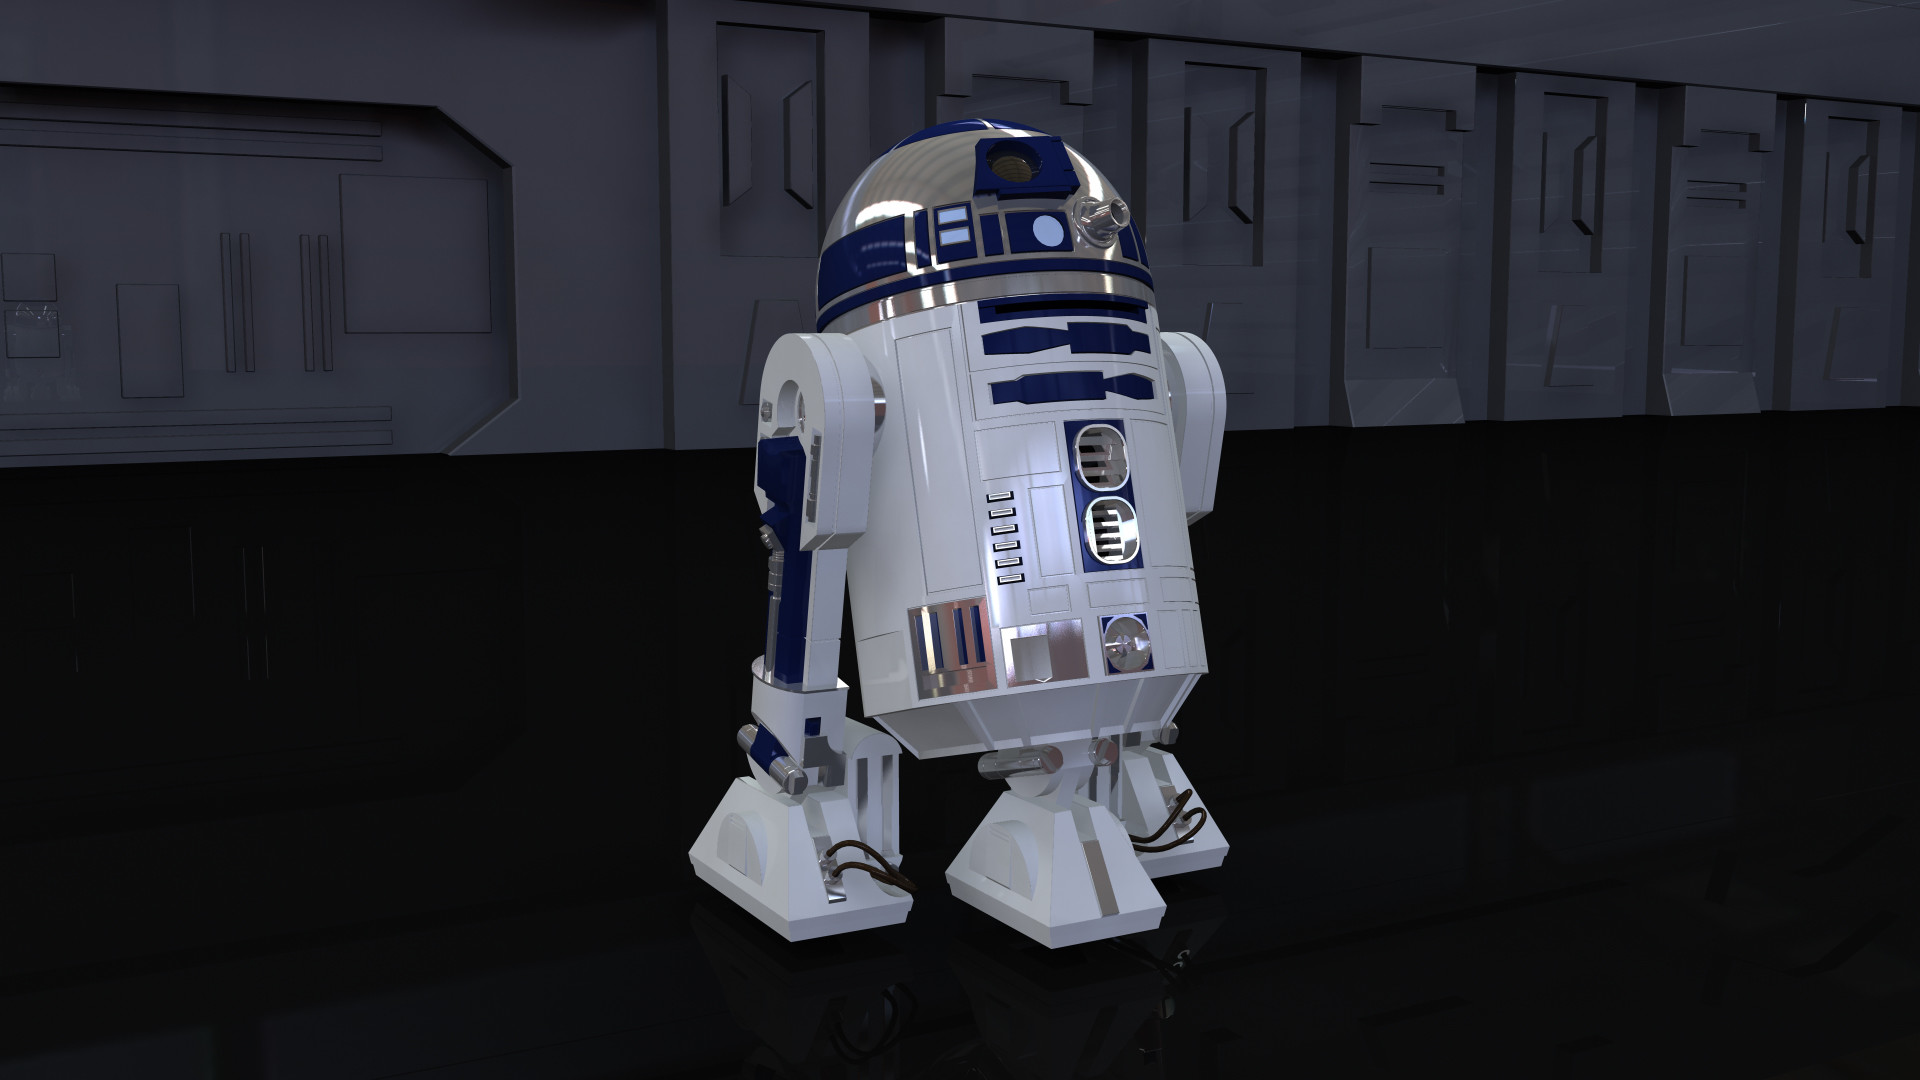 1920x1080 R2 D2 Cutscene Model image Jedi Academy Unleashed Mod for Star